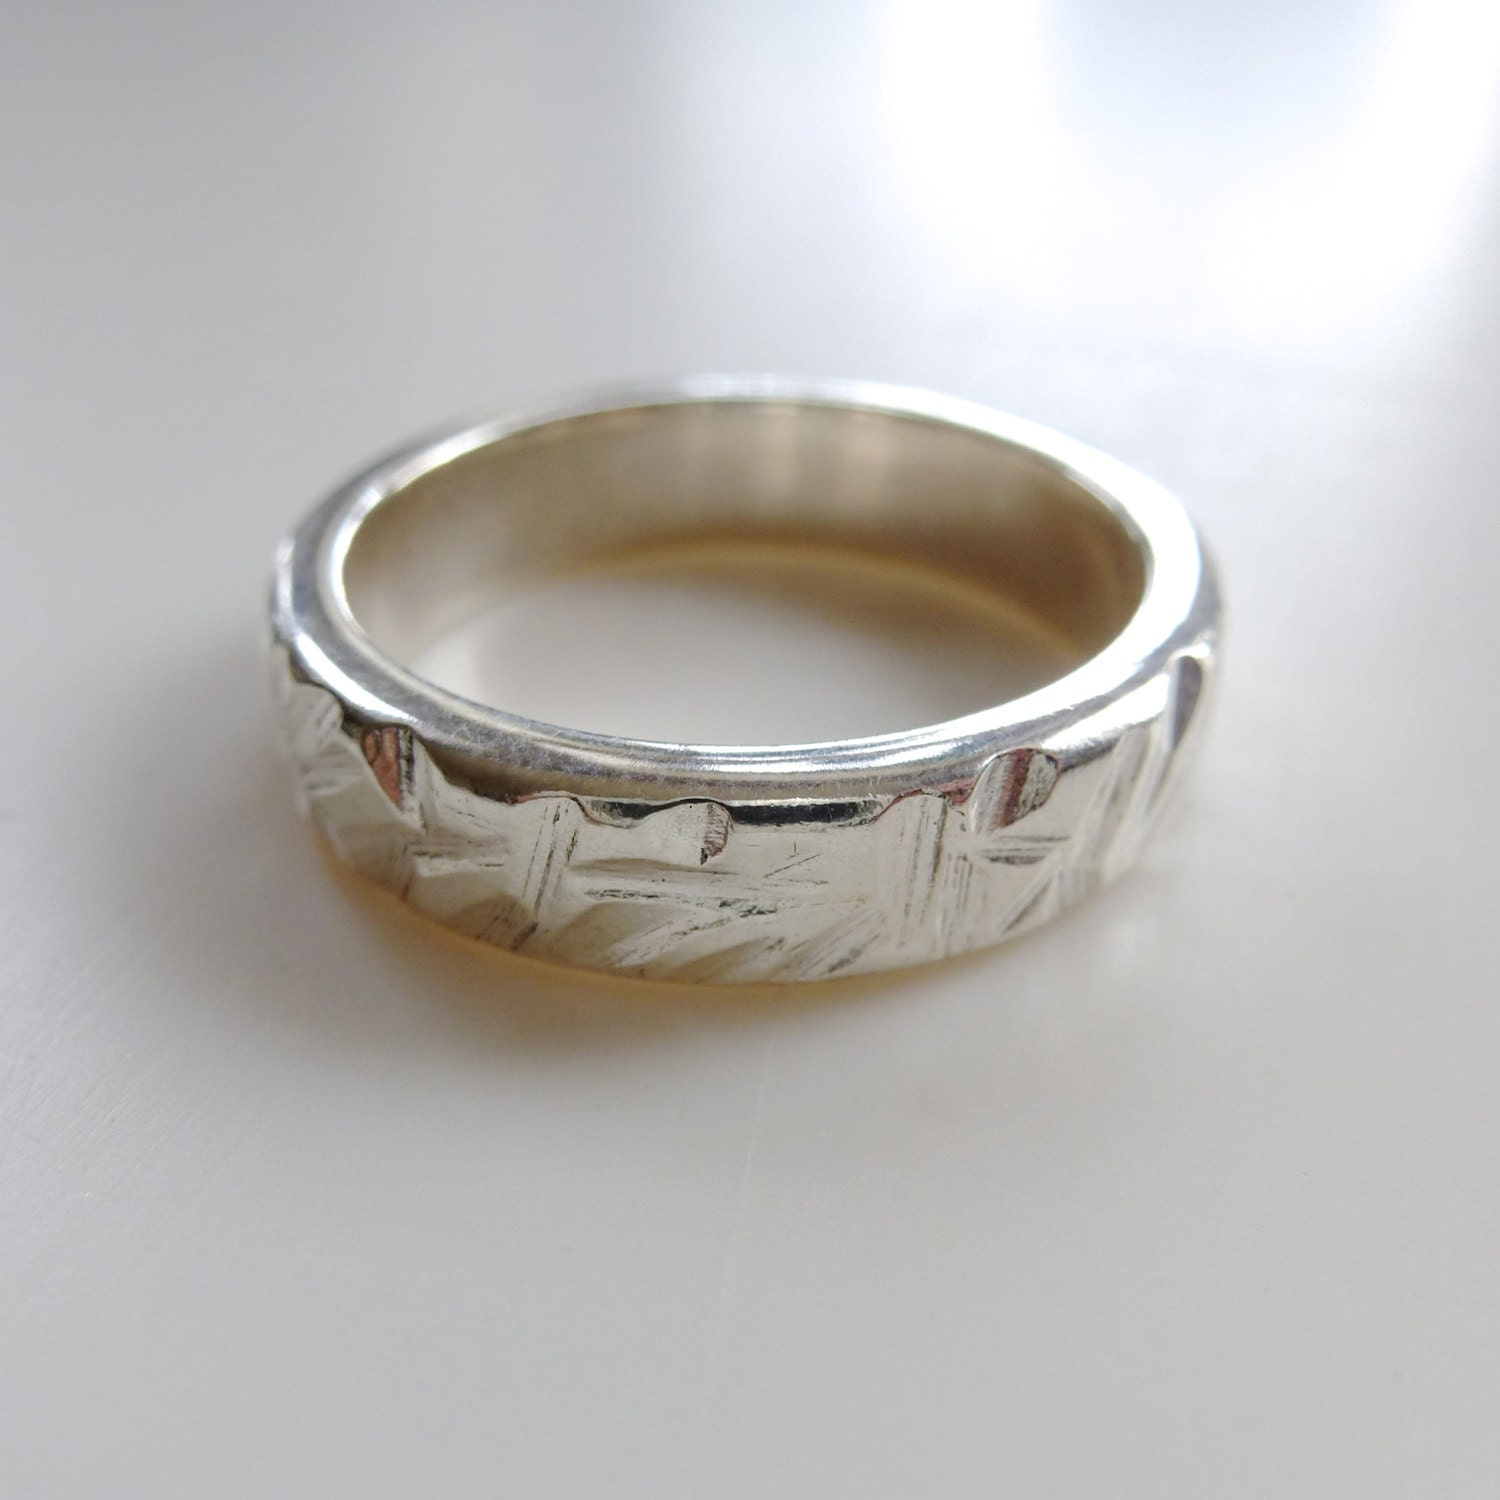 reeds wedding band made to order in your size material